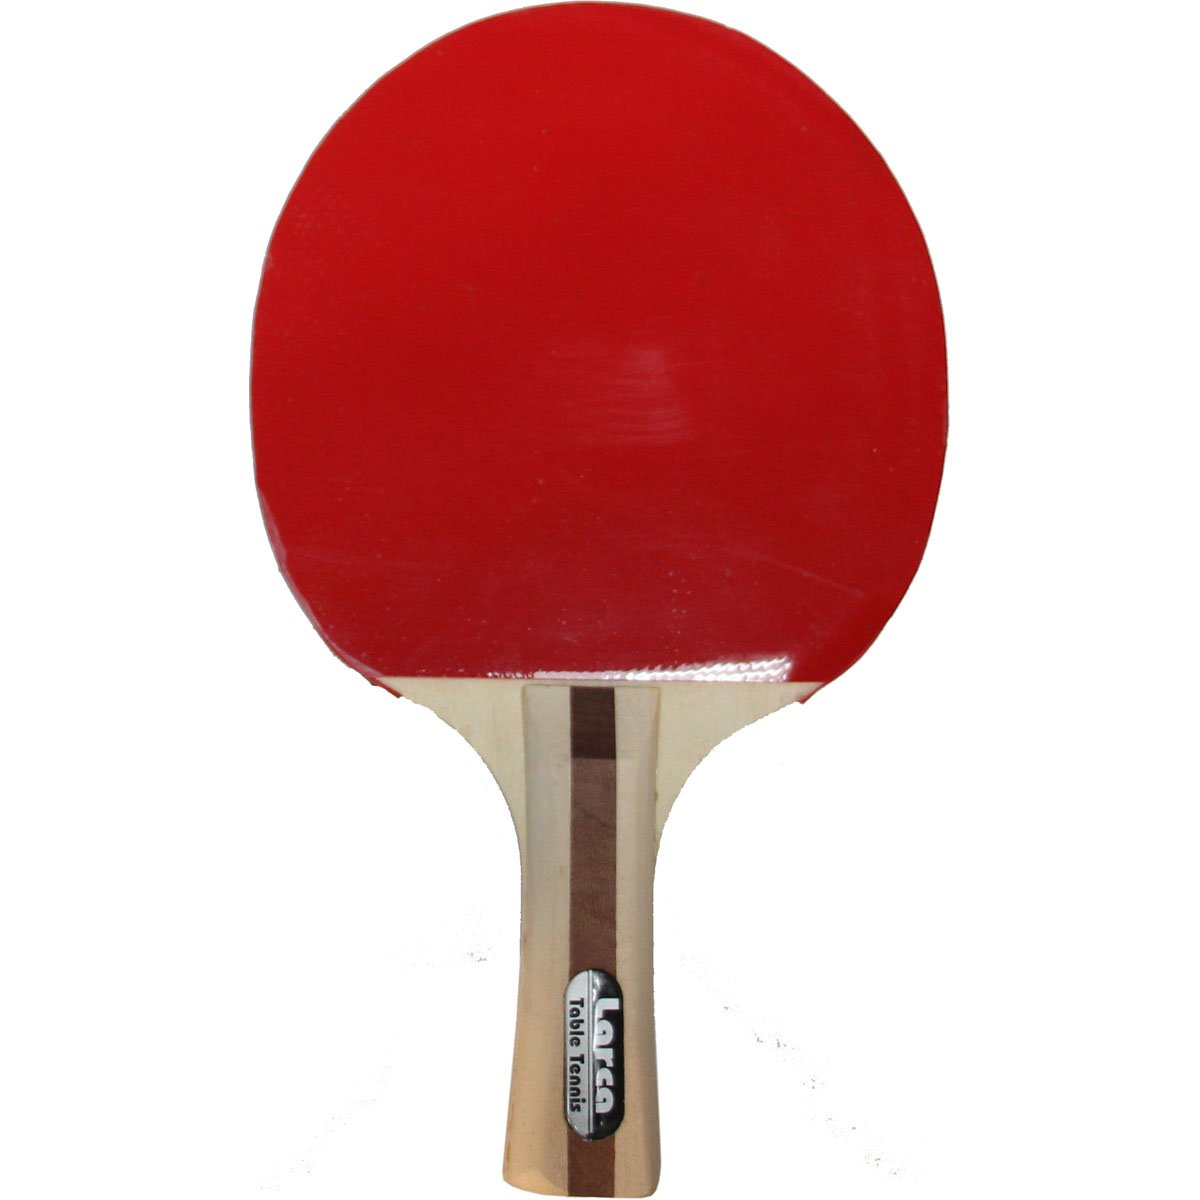 raqueta individual ping pong larca sears com mx me entiende. Black Bedroom Furniture Sets. Home Design Ideas